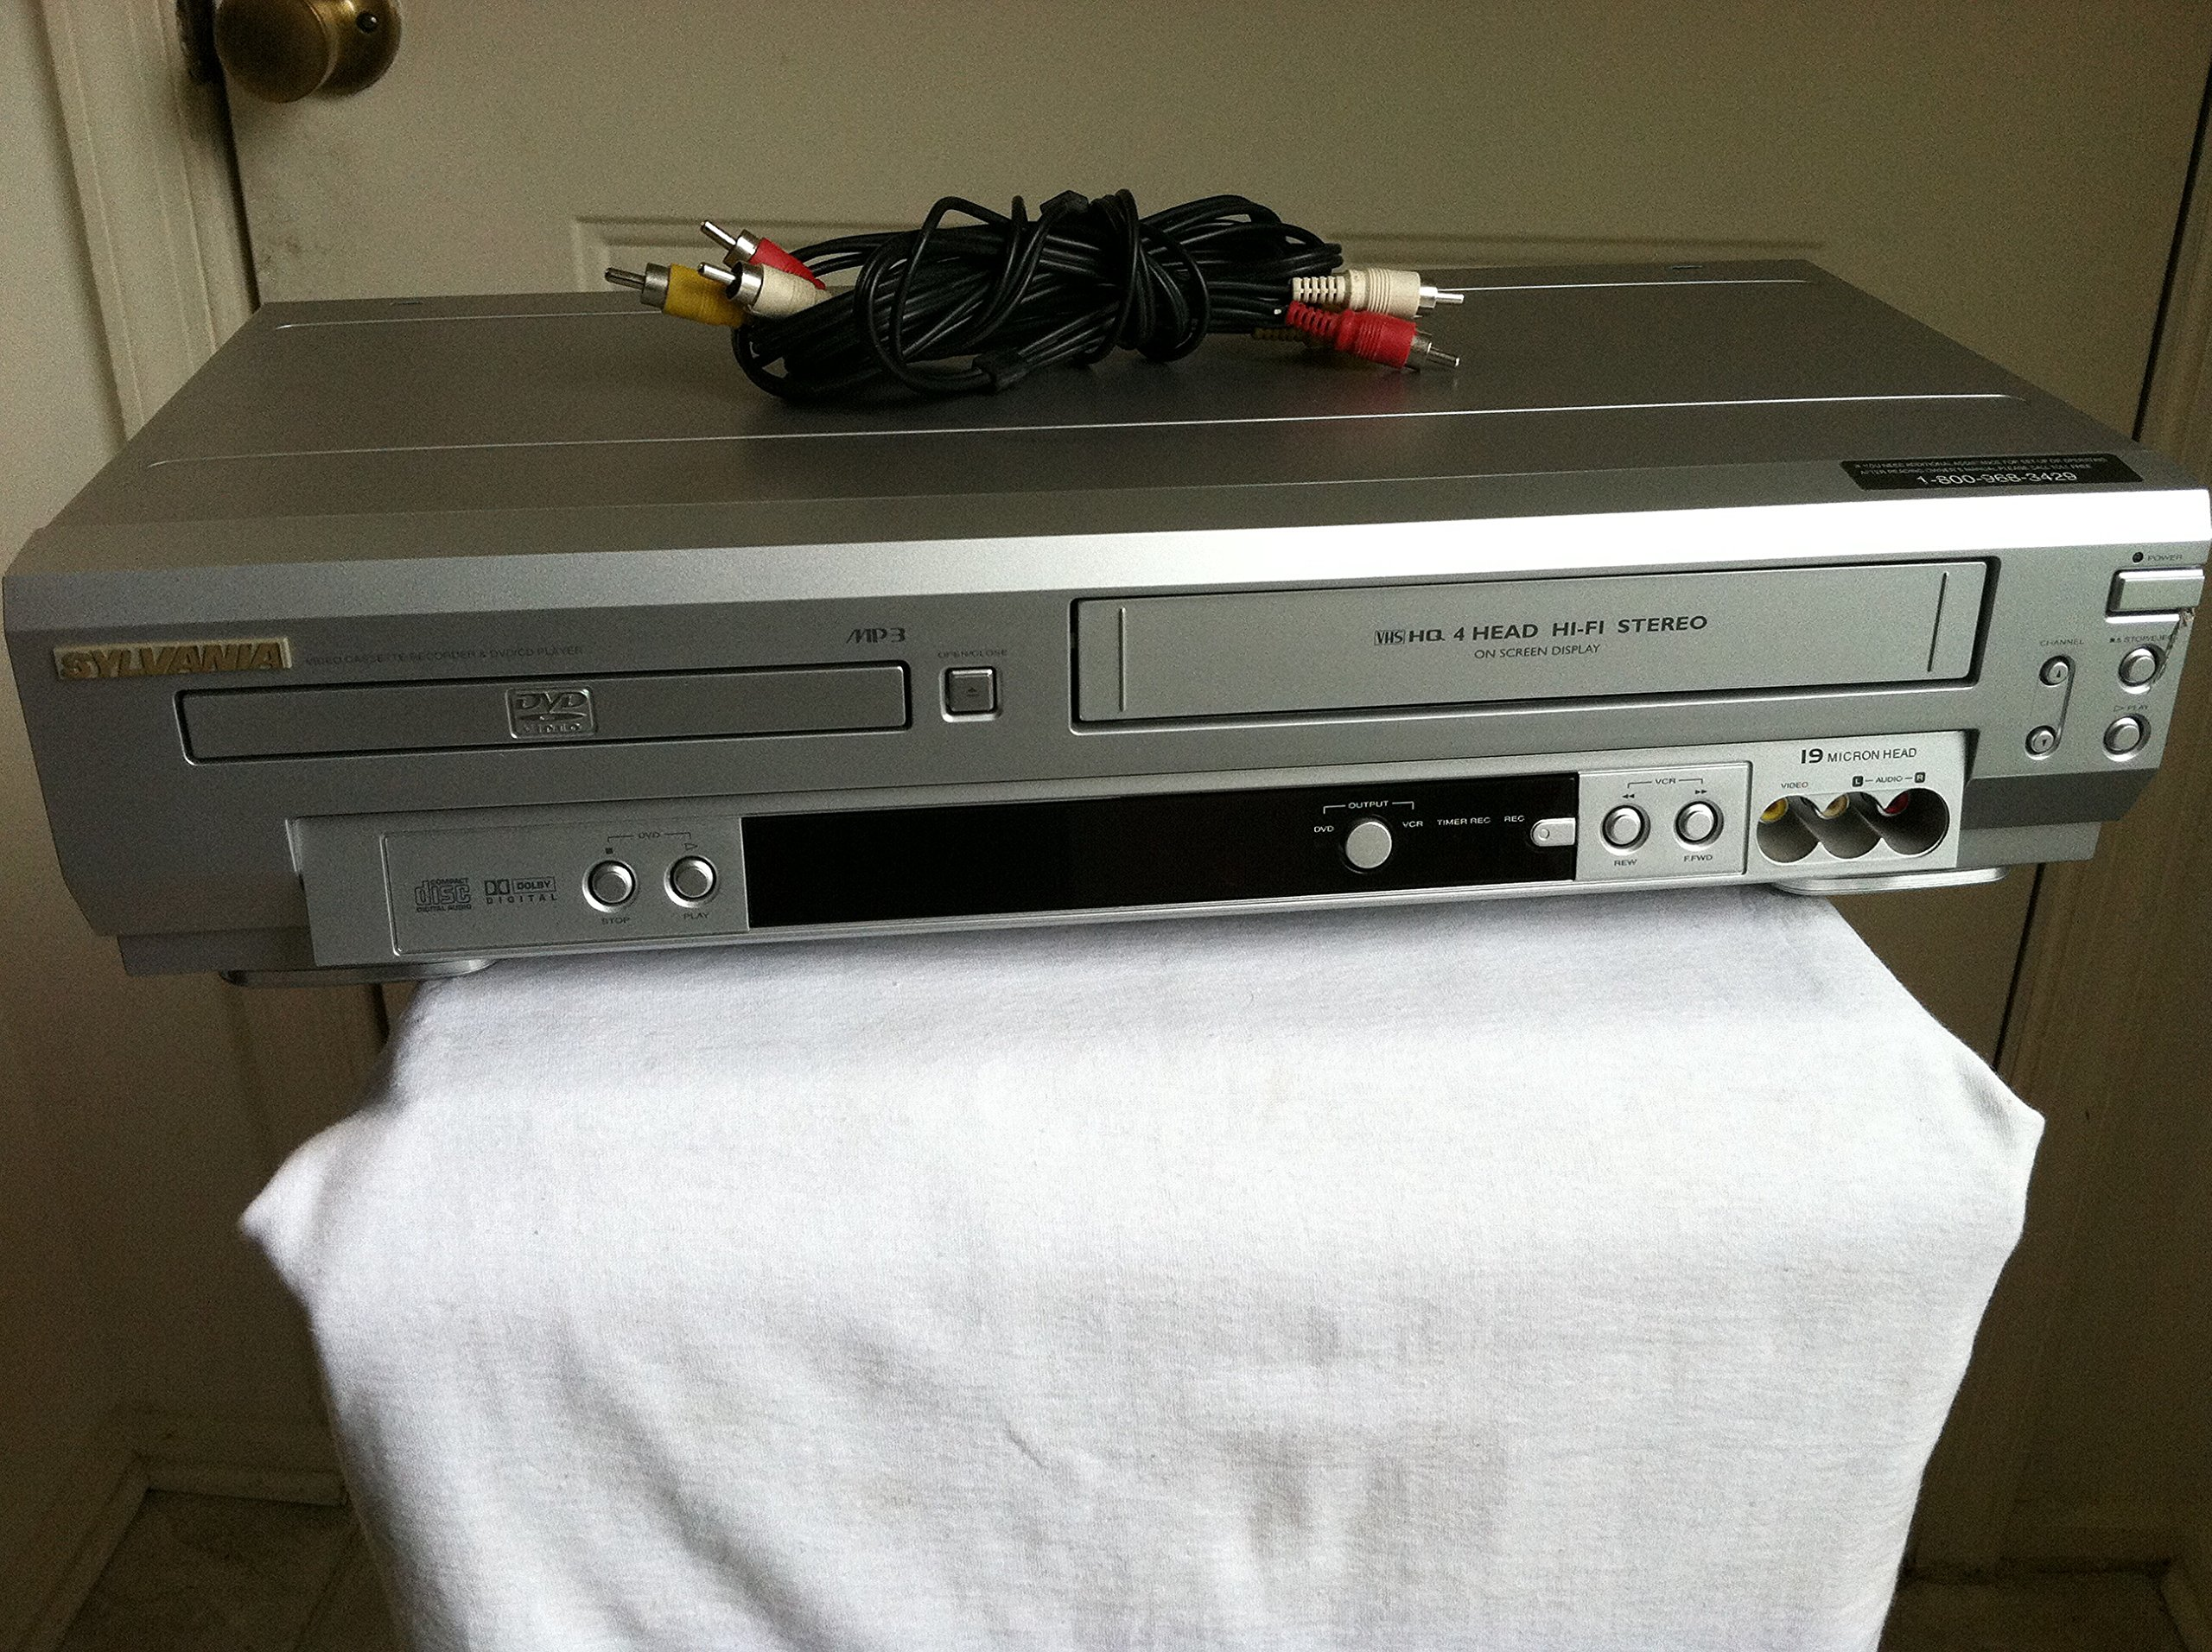 Sylvania SSD803 DVD/VCR Video Cassette Recorder / DVD Player COMBO. VHS & CD Player. Dolby Digital Sound. AV Cable Included. No Remote